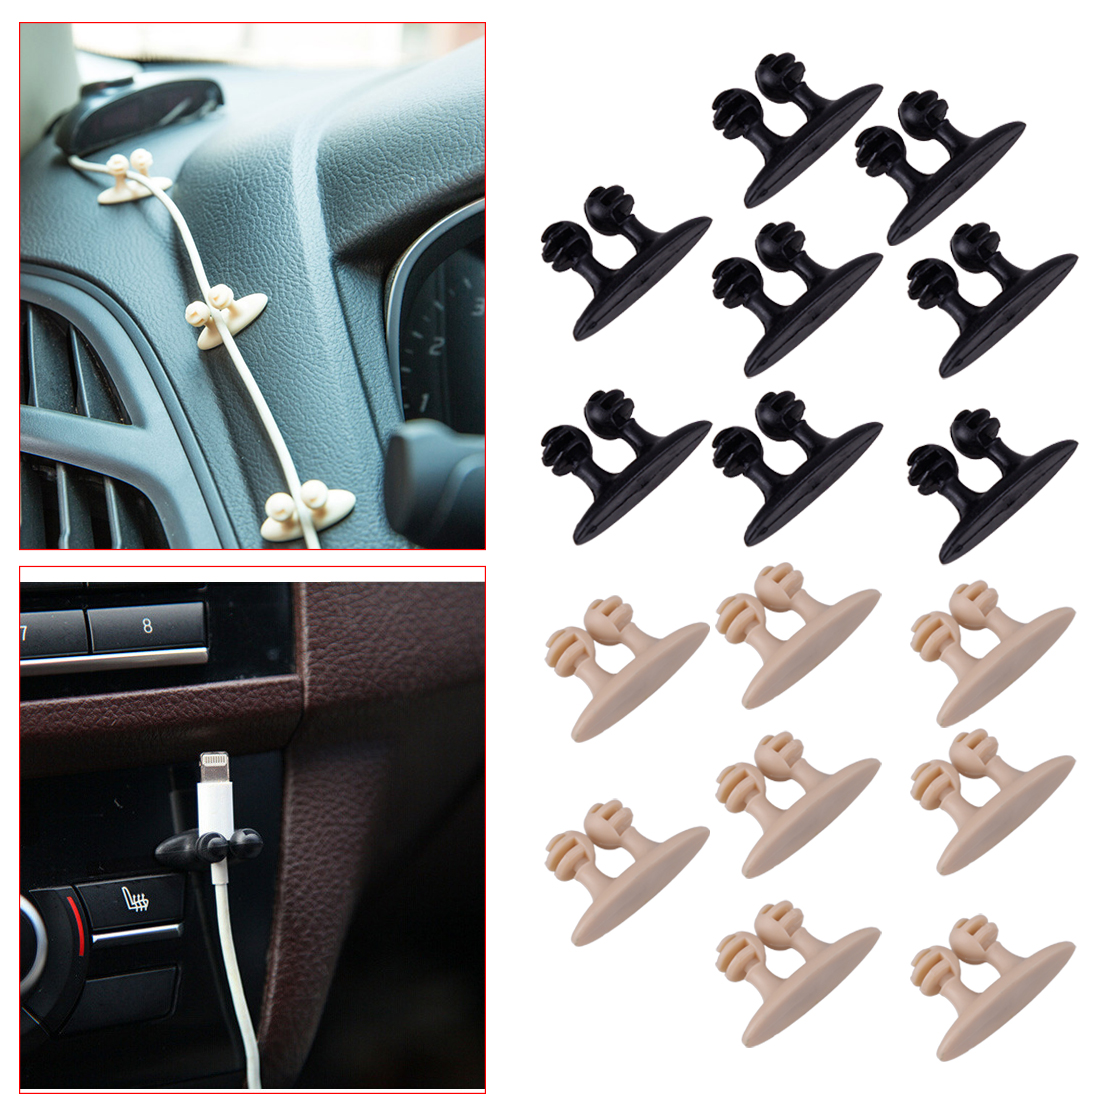 CITALL New Black Beige 8pcs PVC Car Wire Cord Clip Vehicle USB Charger line Cable Holder Organizer Clamp Plastic for Headphone